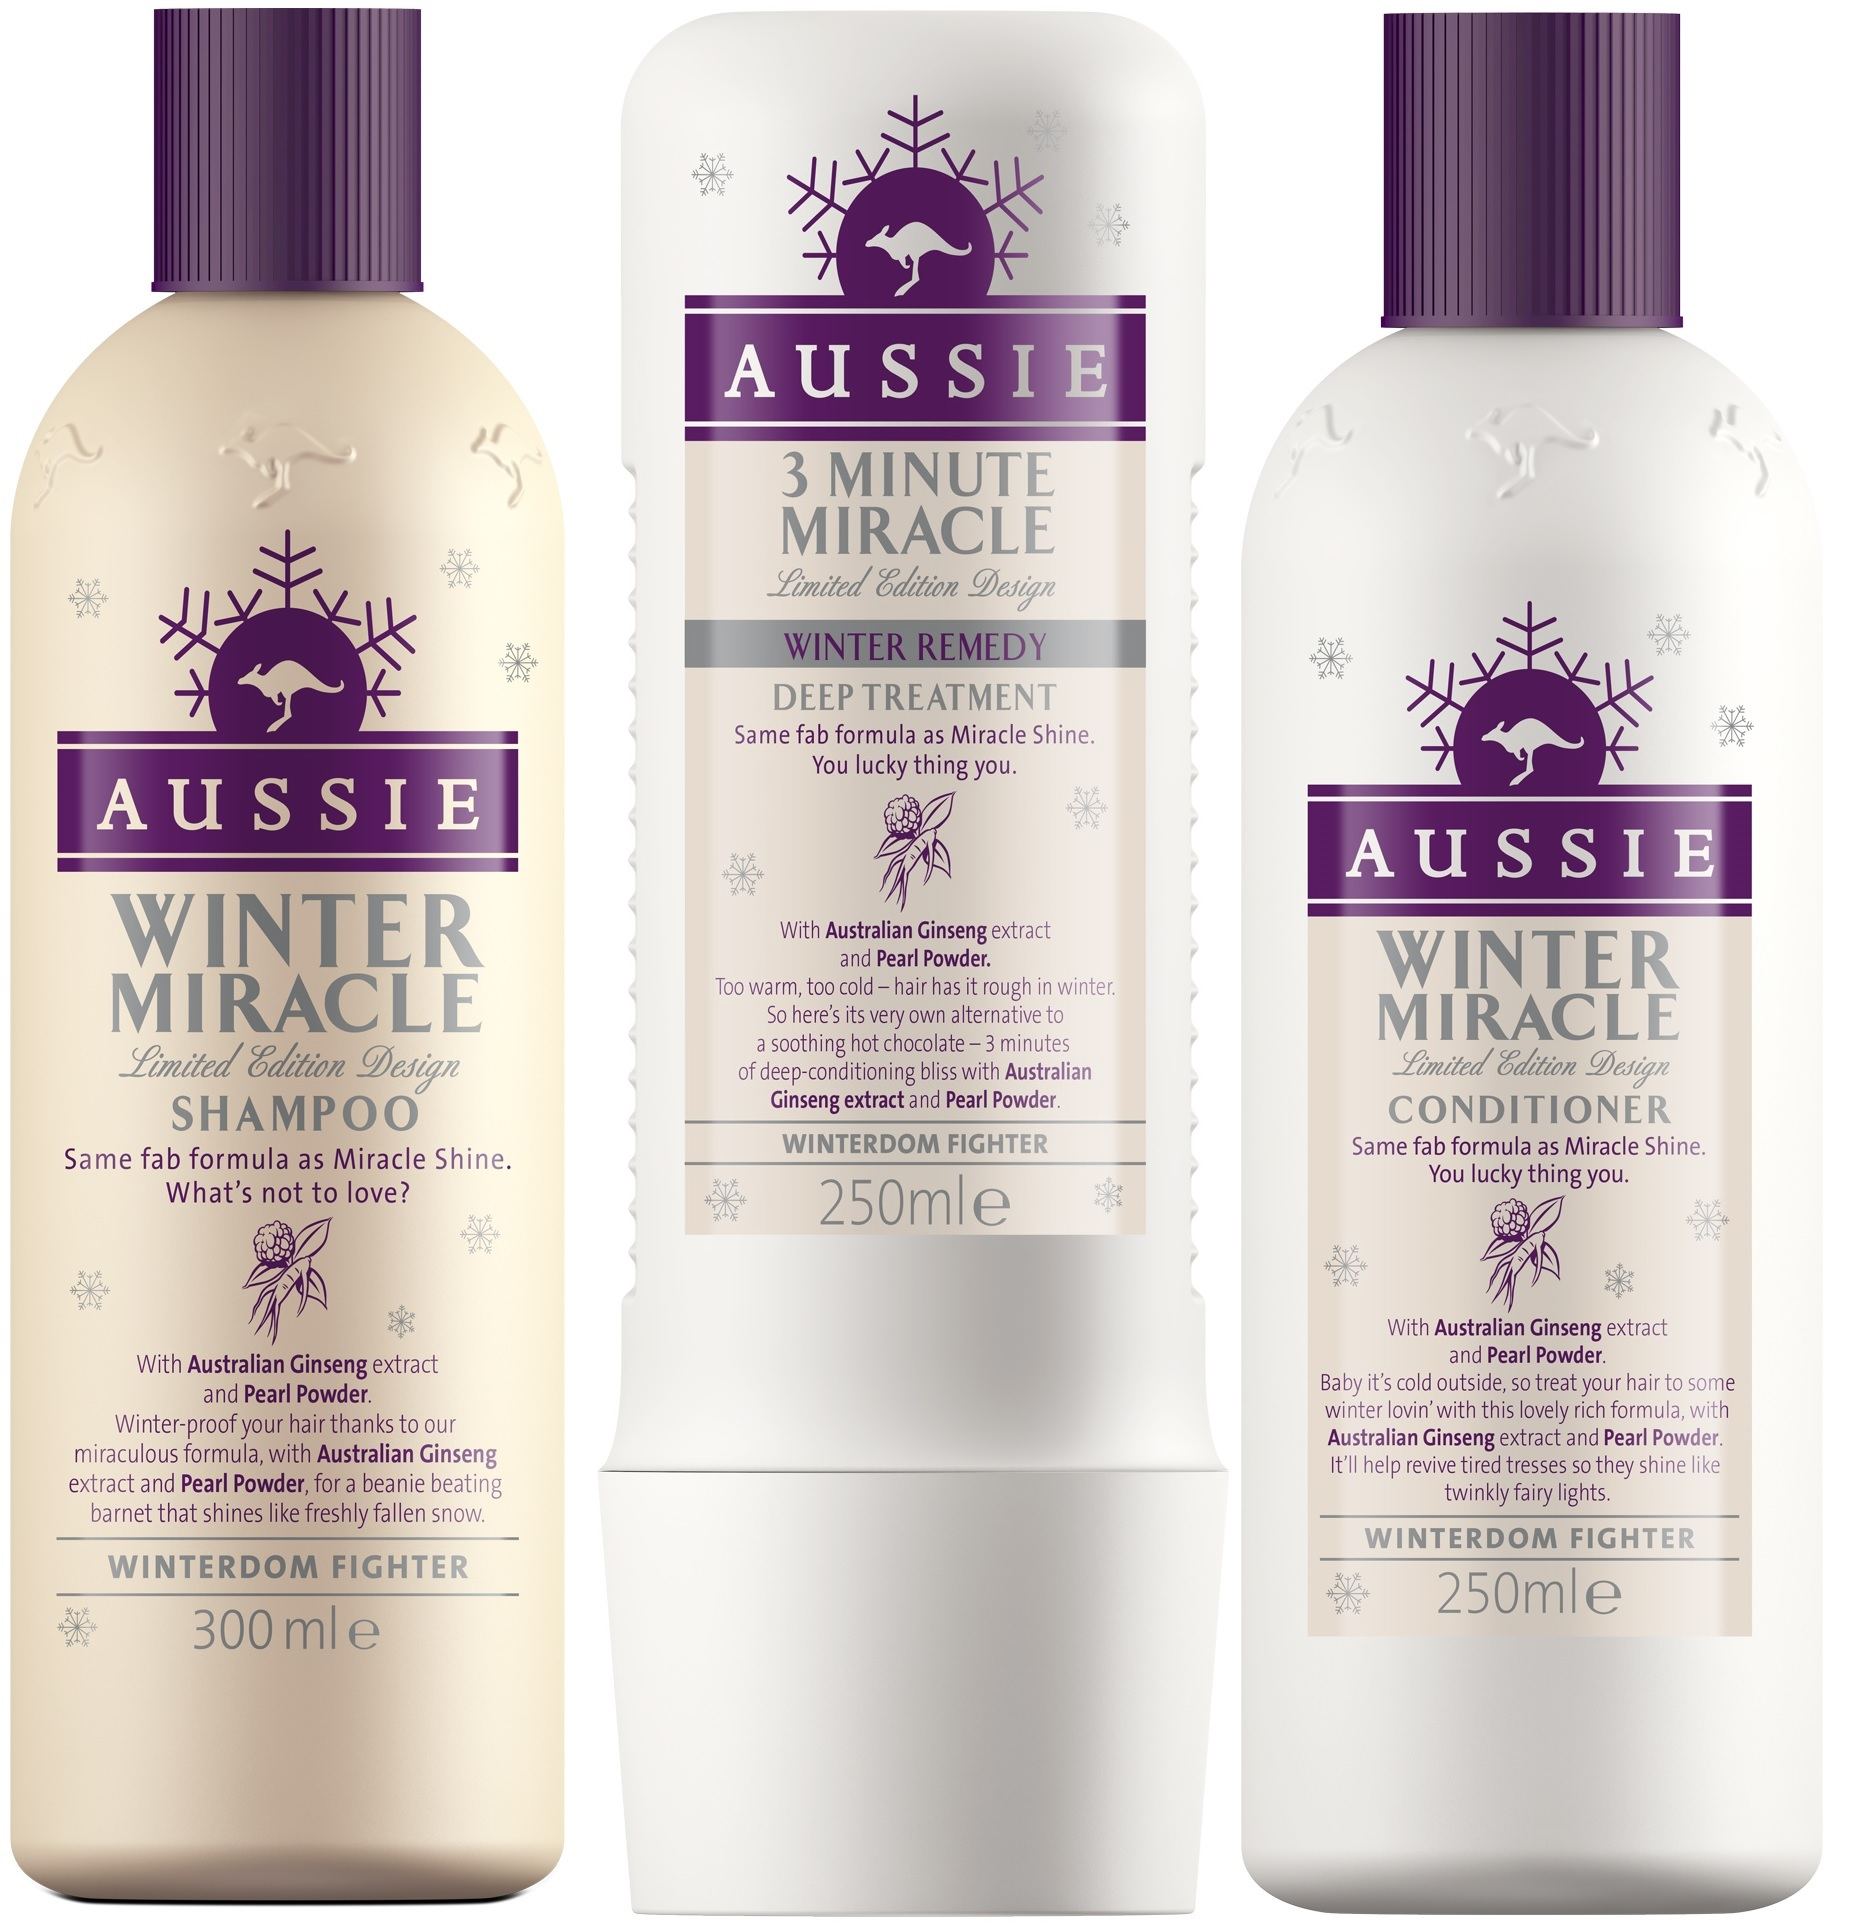 The Aussie Winter Miracle Collection